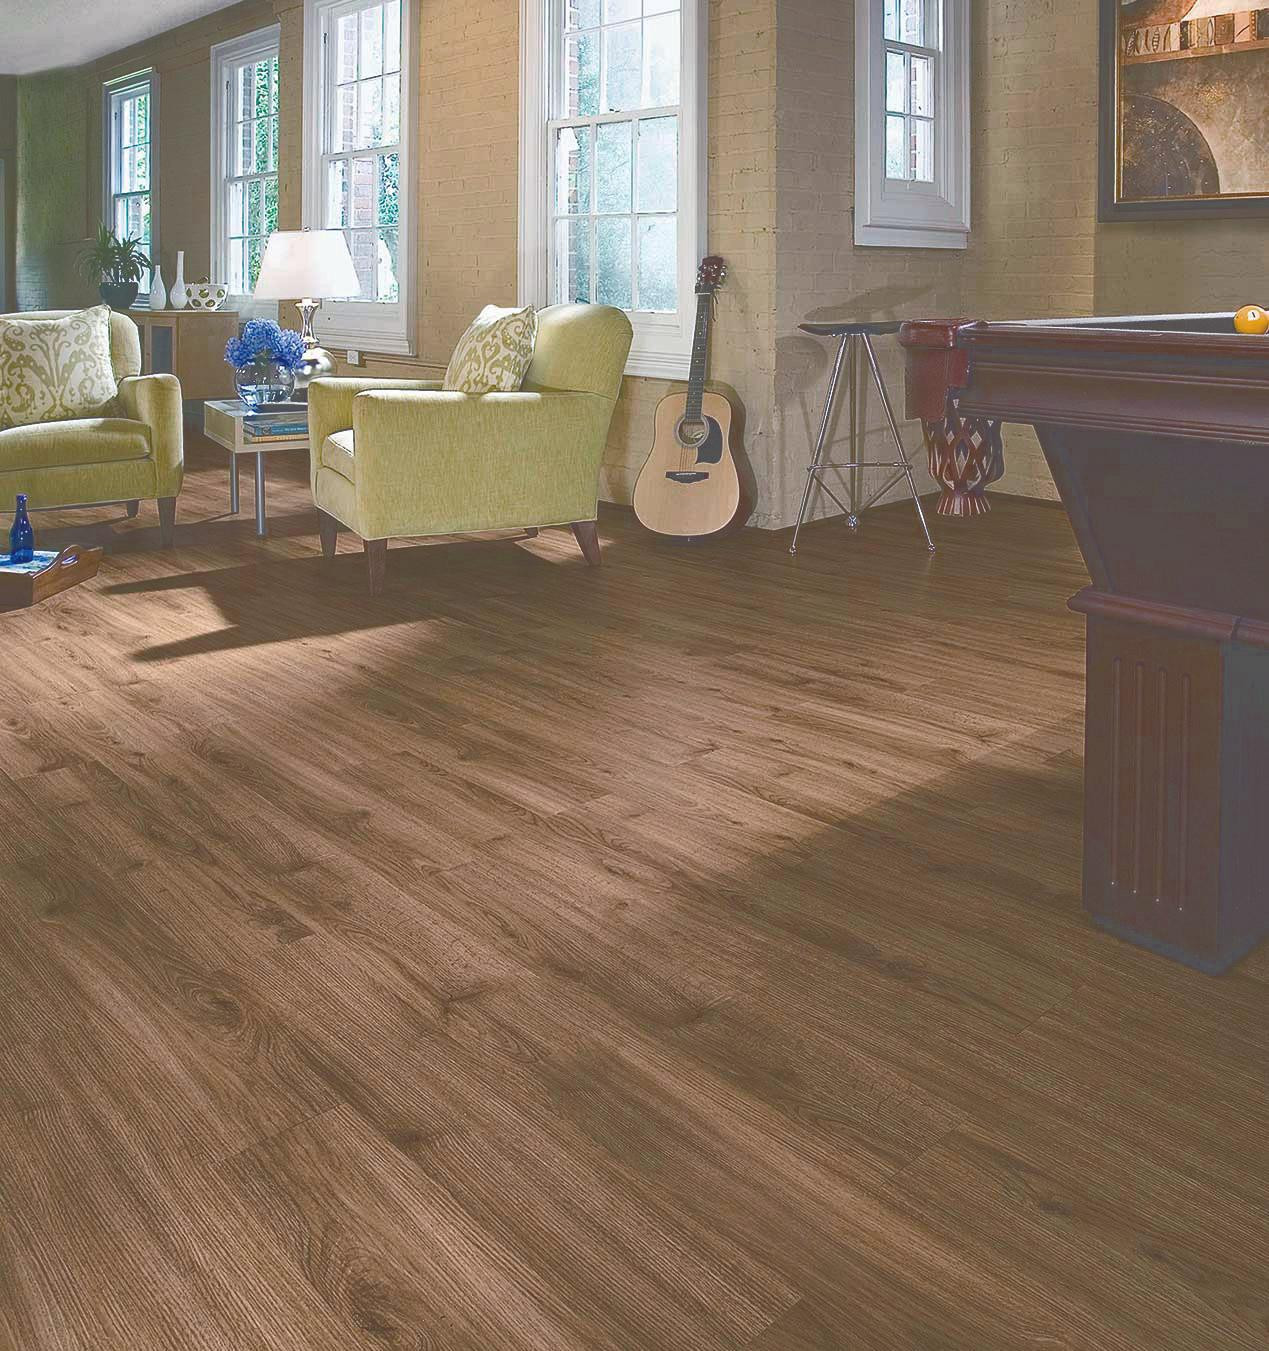 Mohawk Hardwood Flooring Care Of Mohawk Golden Haze 7 Wide Glue Down Luxury Vinyl Plank Flooring Intended for Room Mohawk Golden Haze 7 Wide Glue Down Luxury Vinyl Plank Flooring